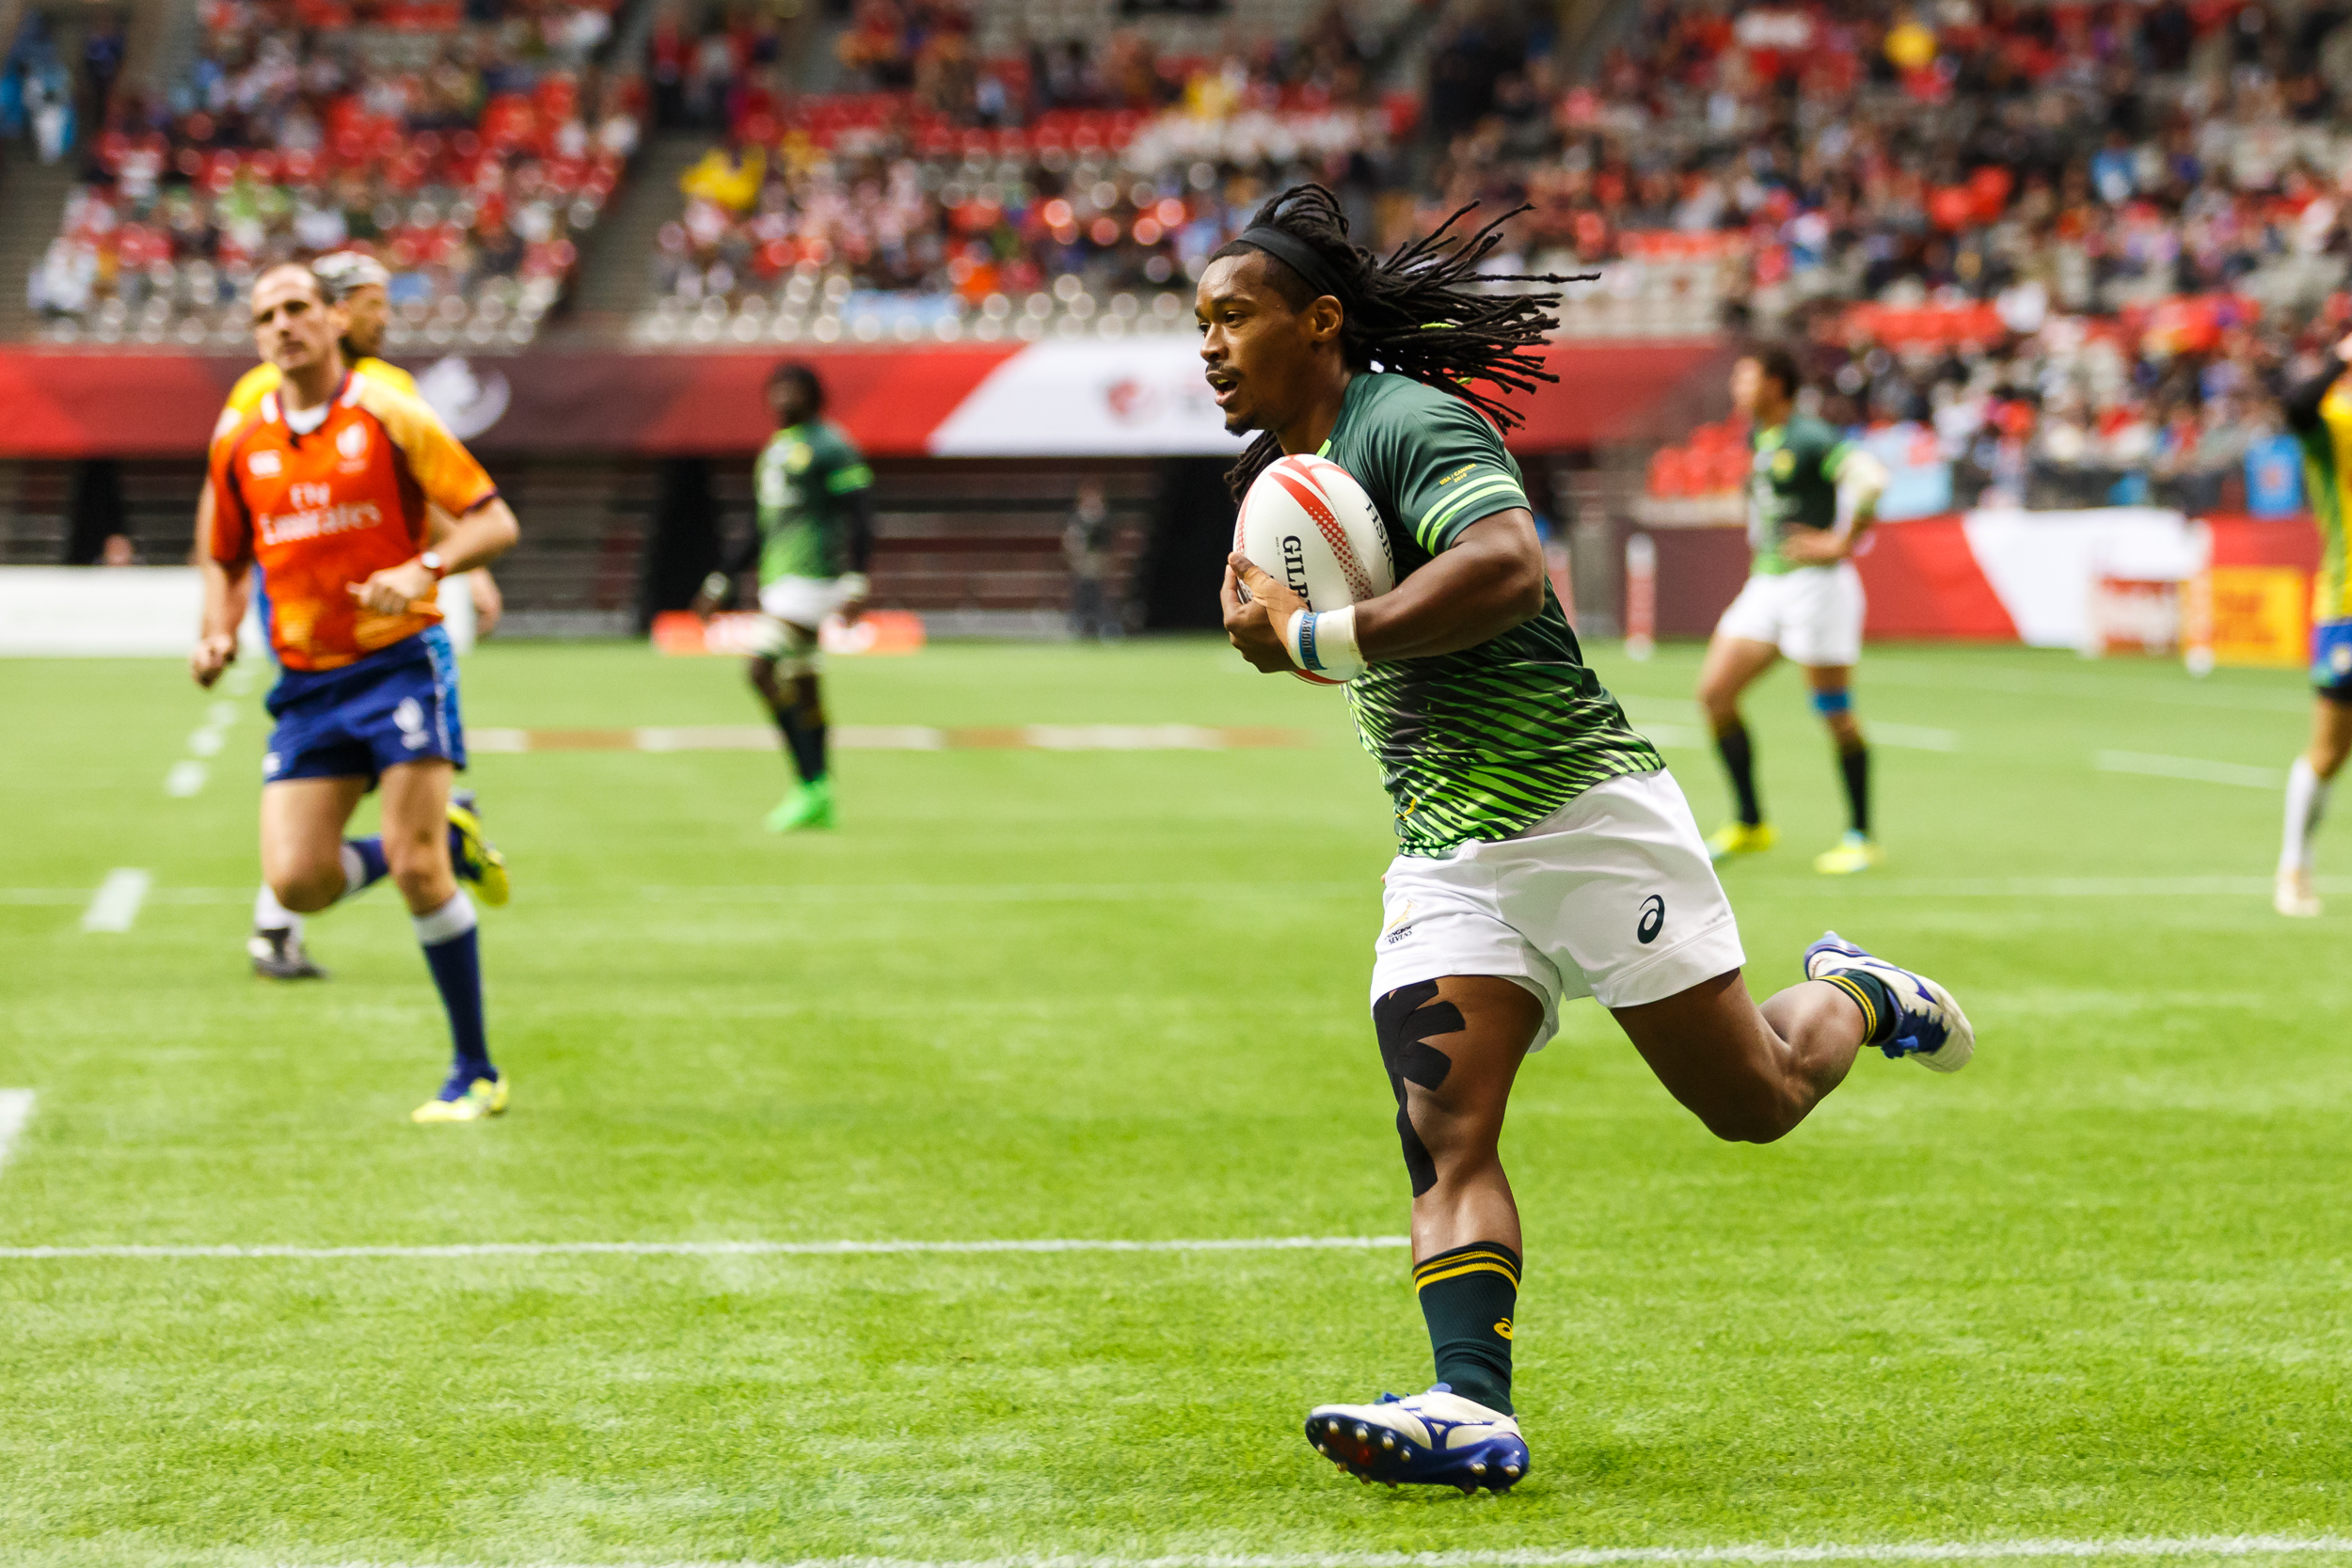 Canada-Rugby-Sevens-photo-8.jpg